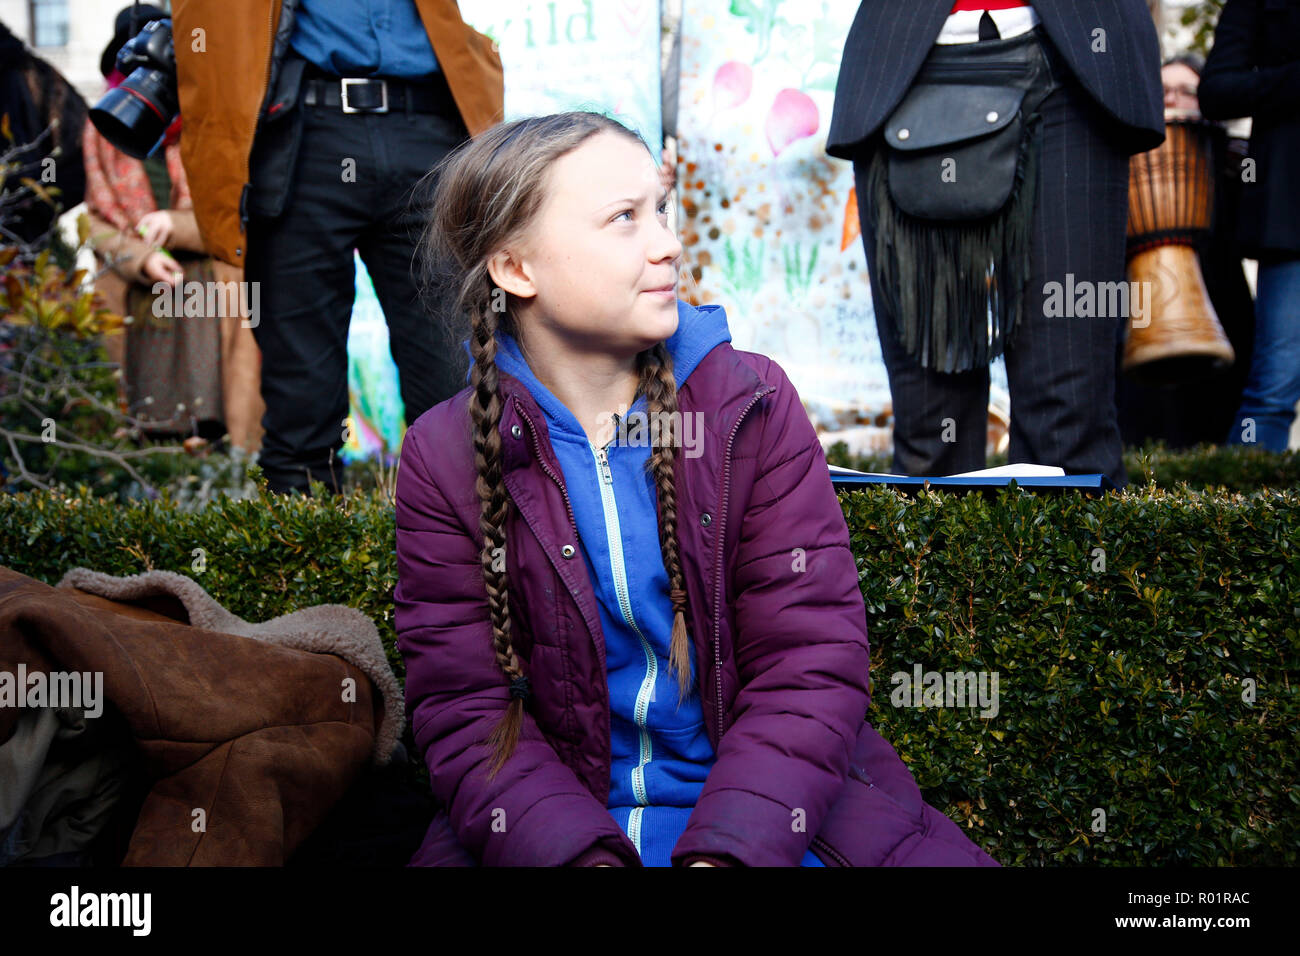 London, UK. 31st October, 2018. Climate change protestors, block roads around Parliament Square, London, UK Credit: Natasha Quarmby/Alamy Live News - Stock Image